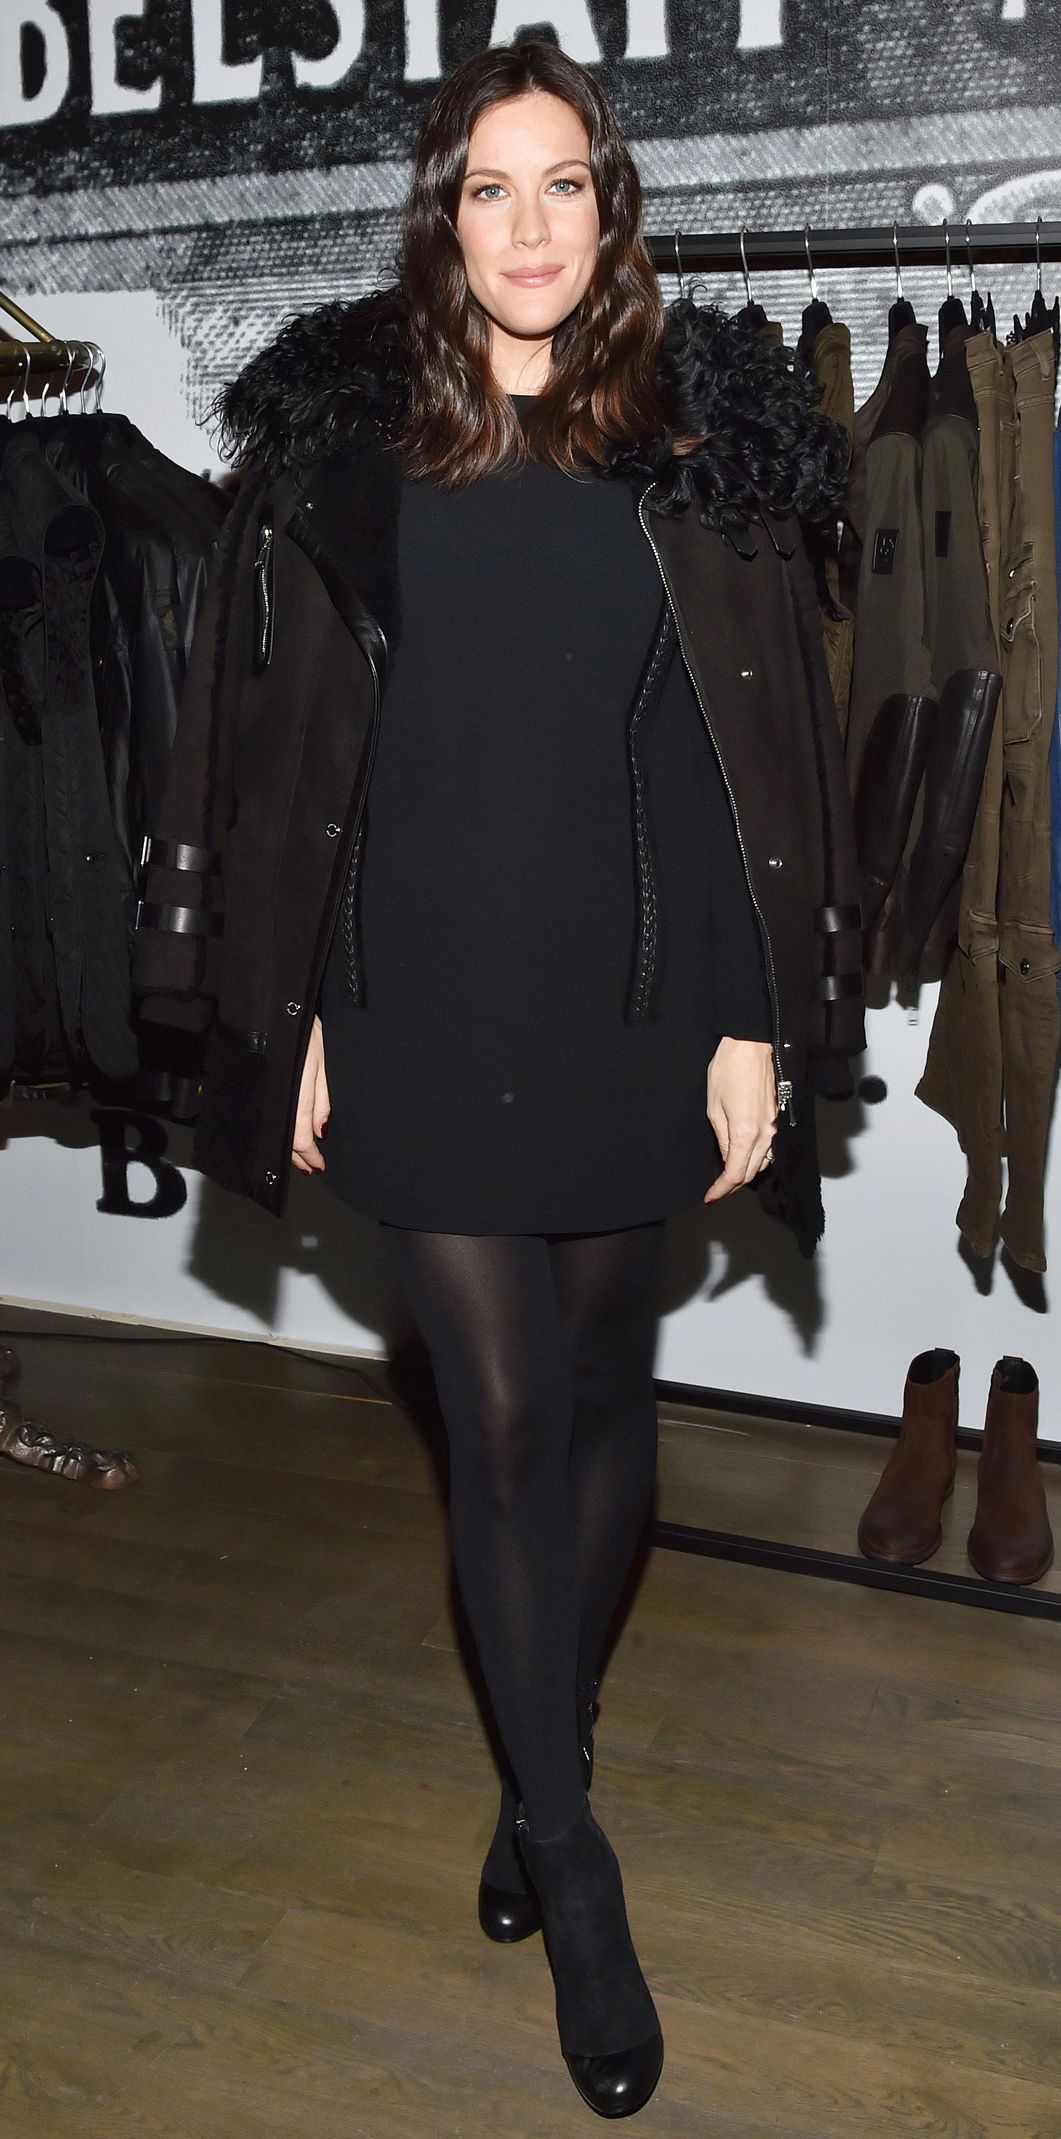 476eb9d56a7 Celebrate Liv Tyler s 39th Birthday with Her 13 Best Maternity Looks -  February 10